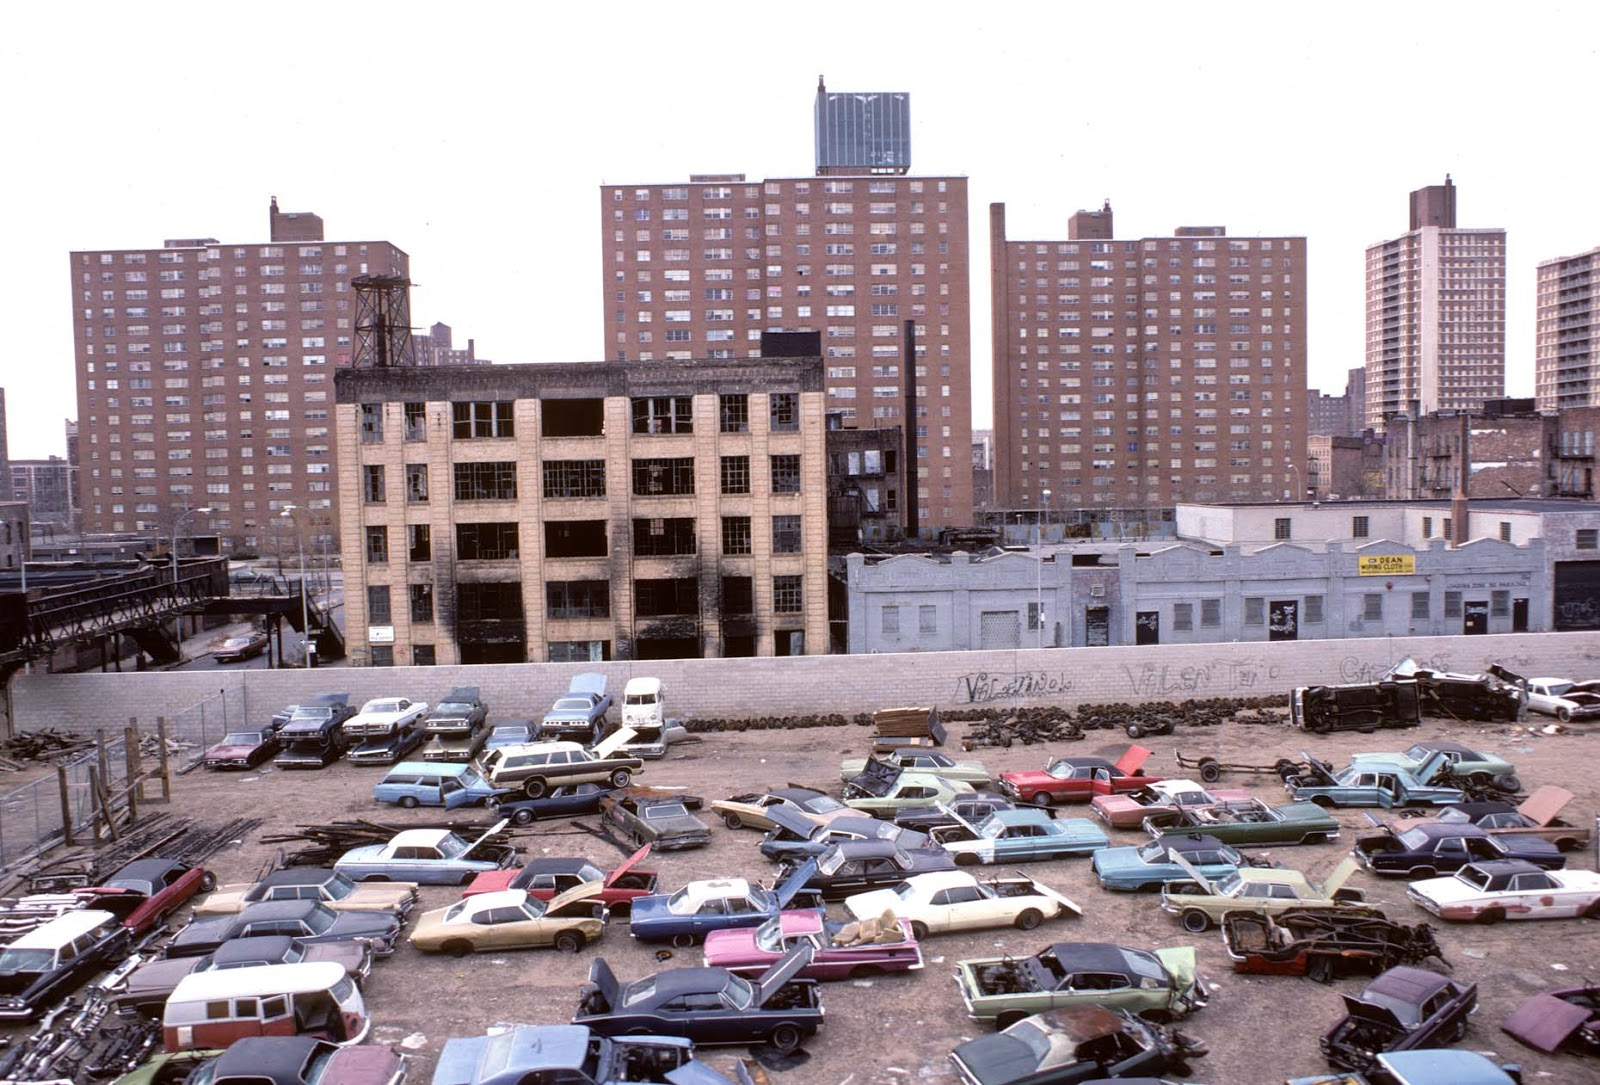 87901346b7 Awesome Photographs of New York City in the 1970s ~ vintage everyday